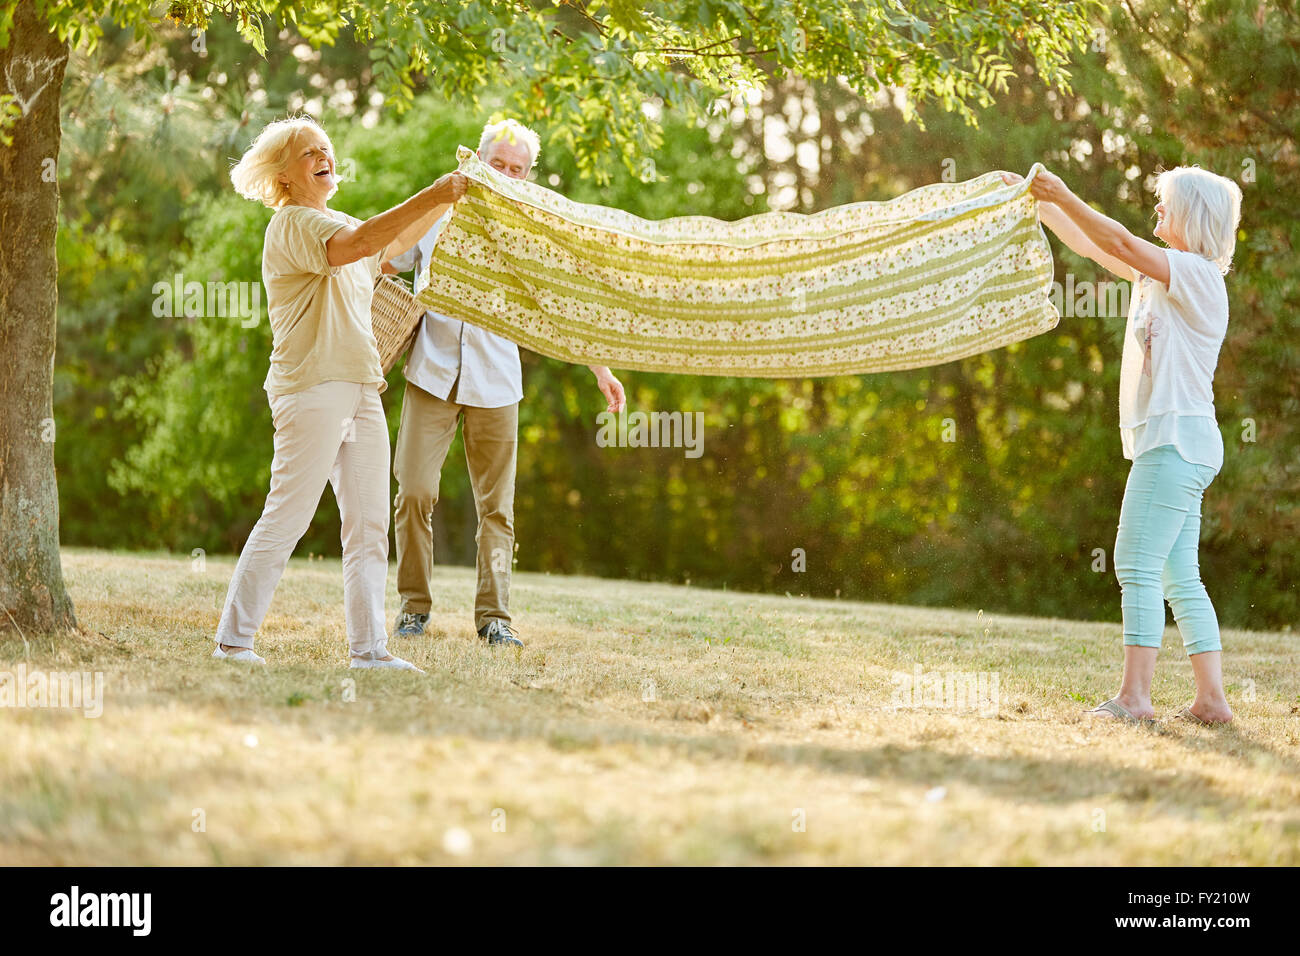 Group of seniors prepare blanket for picninc in summer - Stock Image